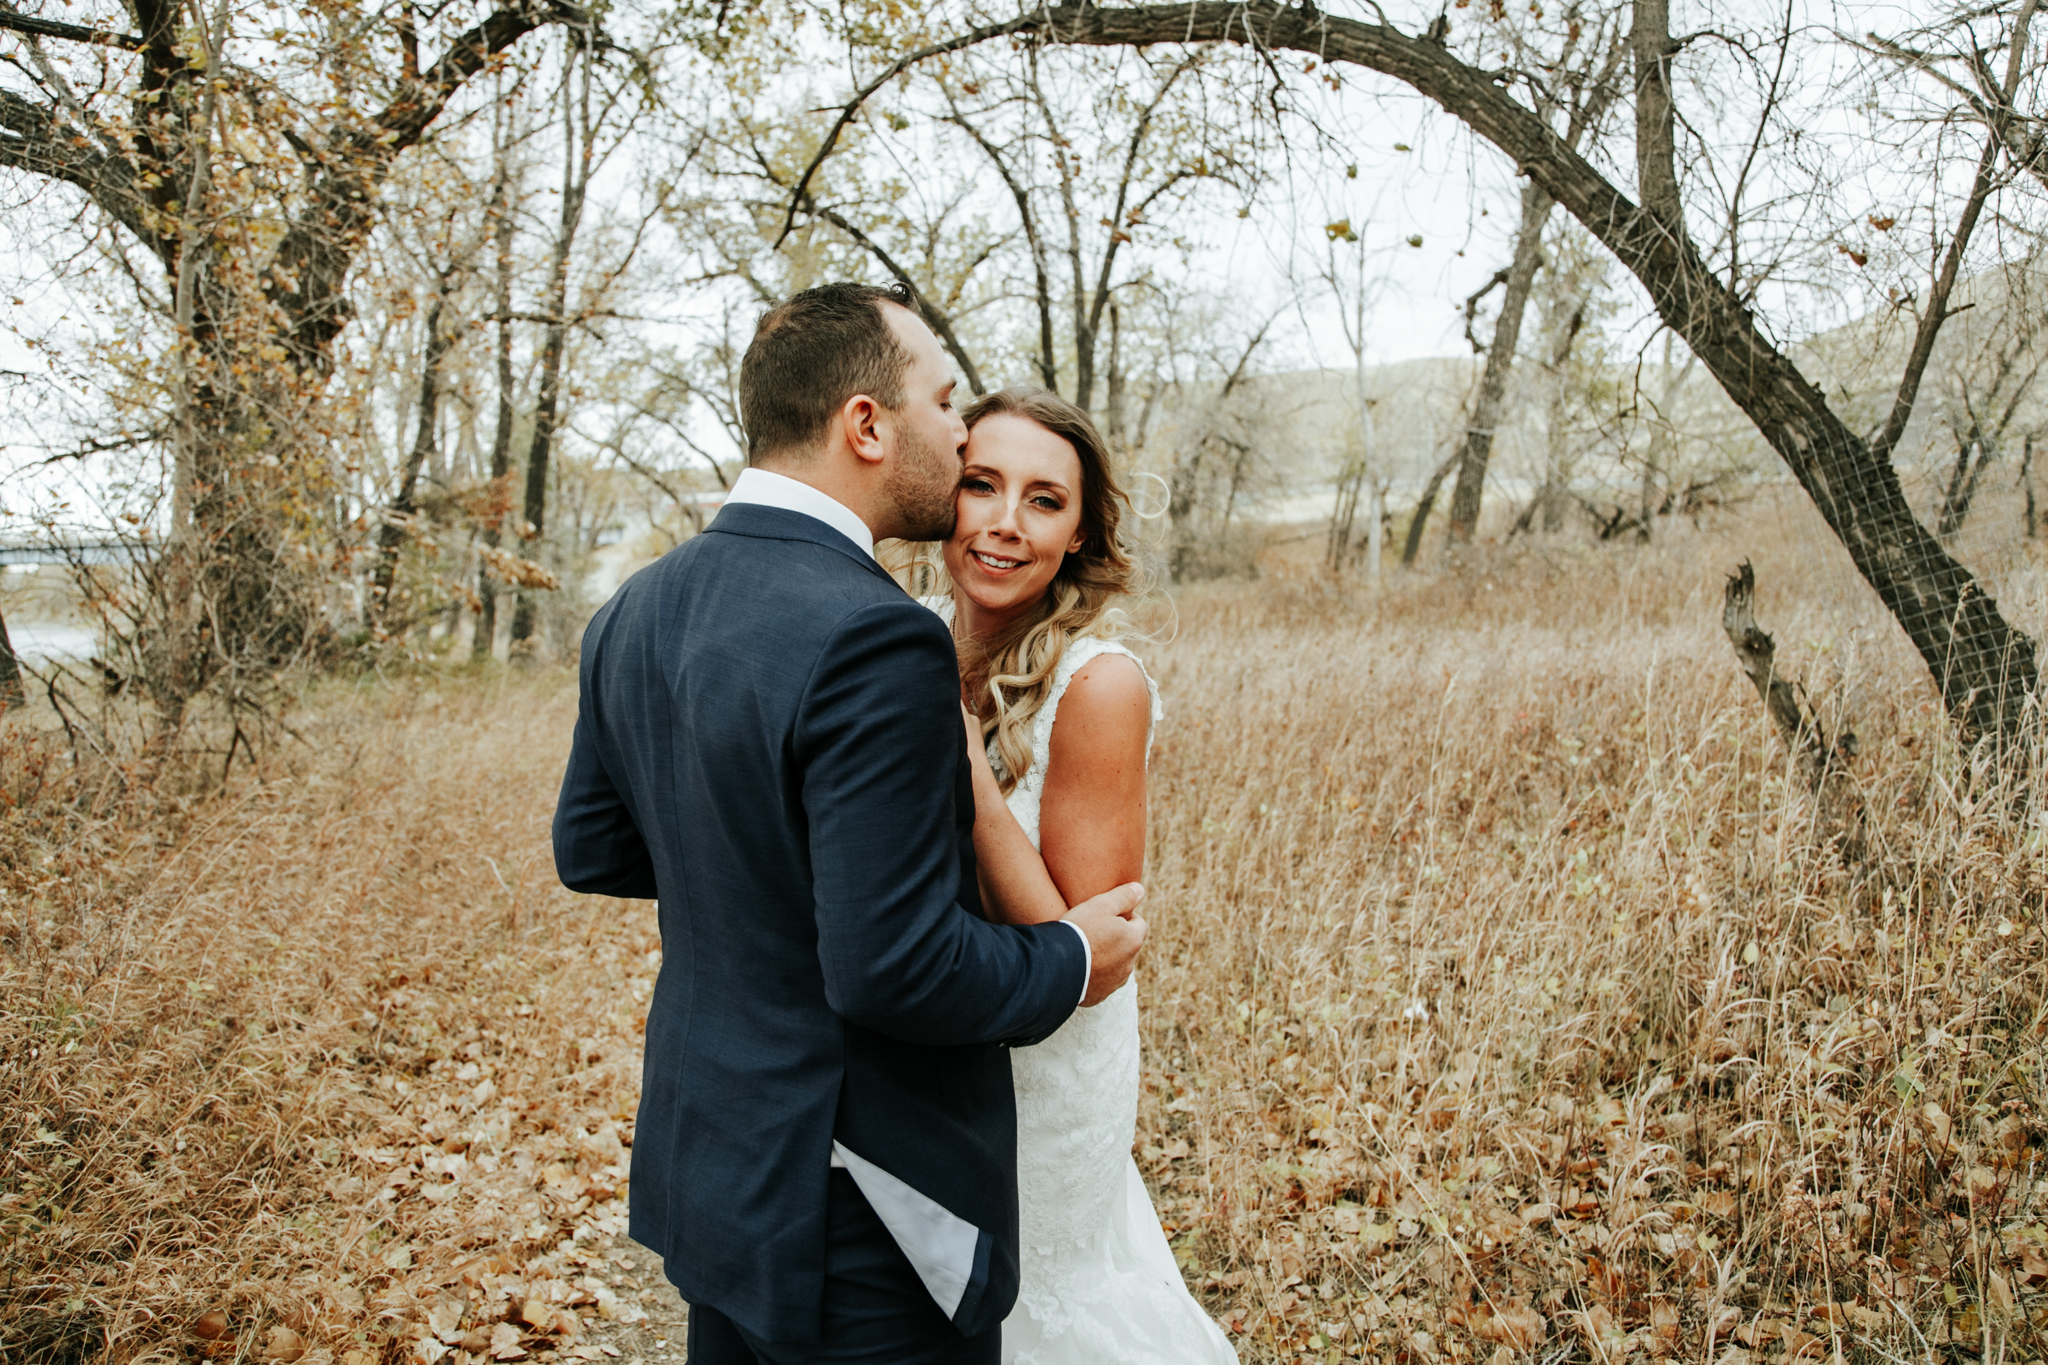 lethbridge-photographer-love-and-be-loved-photography-designed-to-dwell-wedding-katie-kelly-photo-image-picture-41.jpg